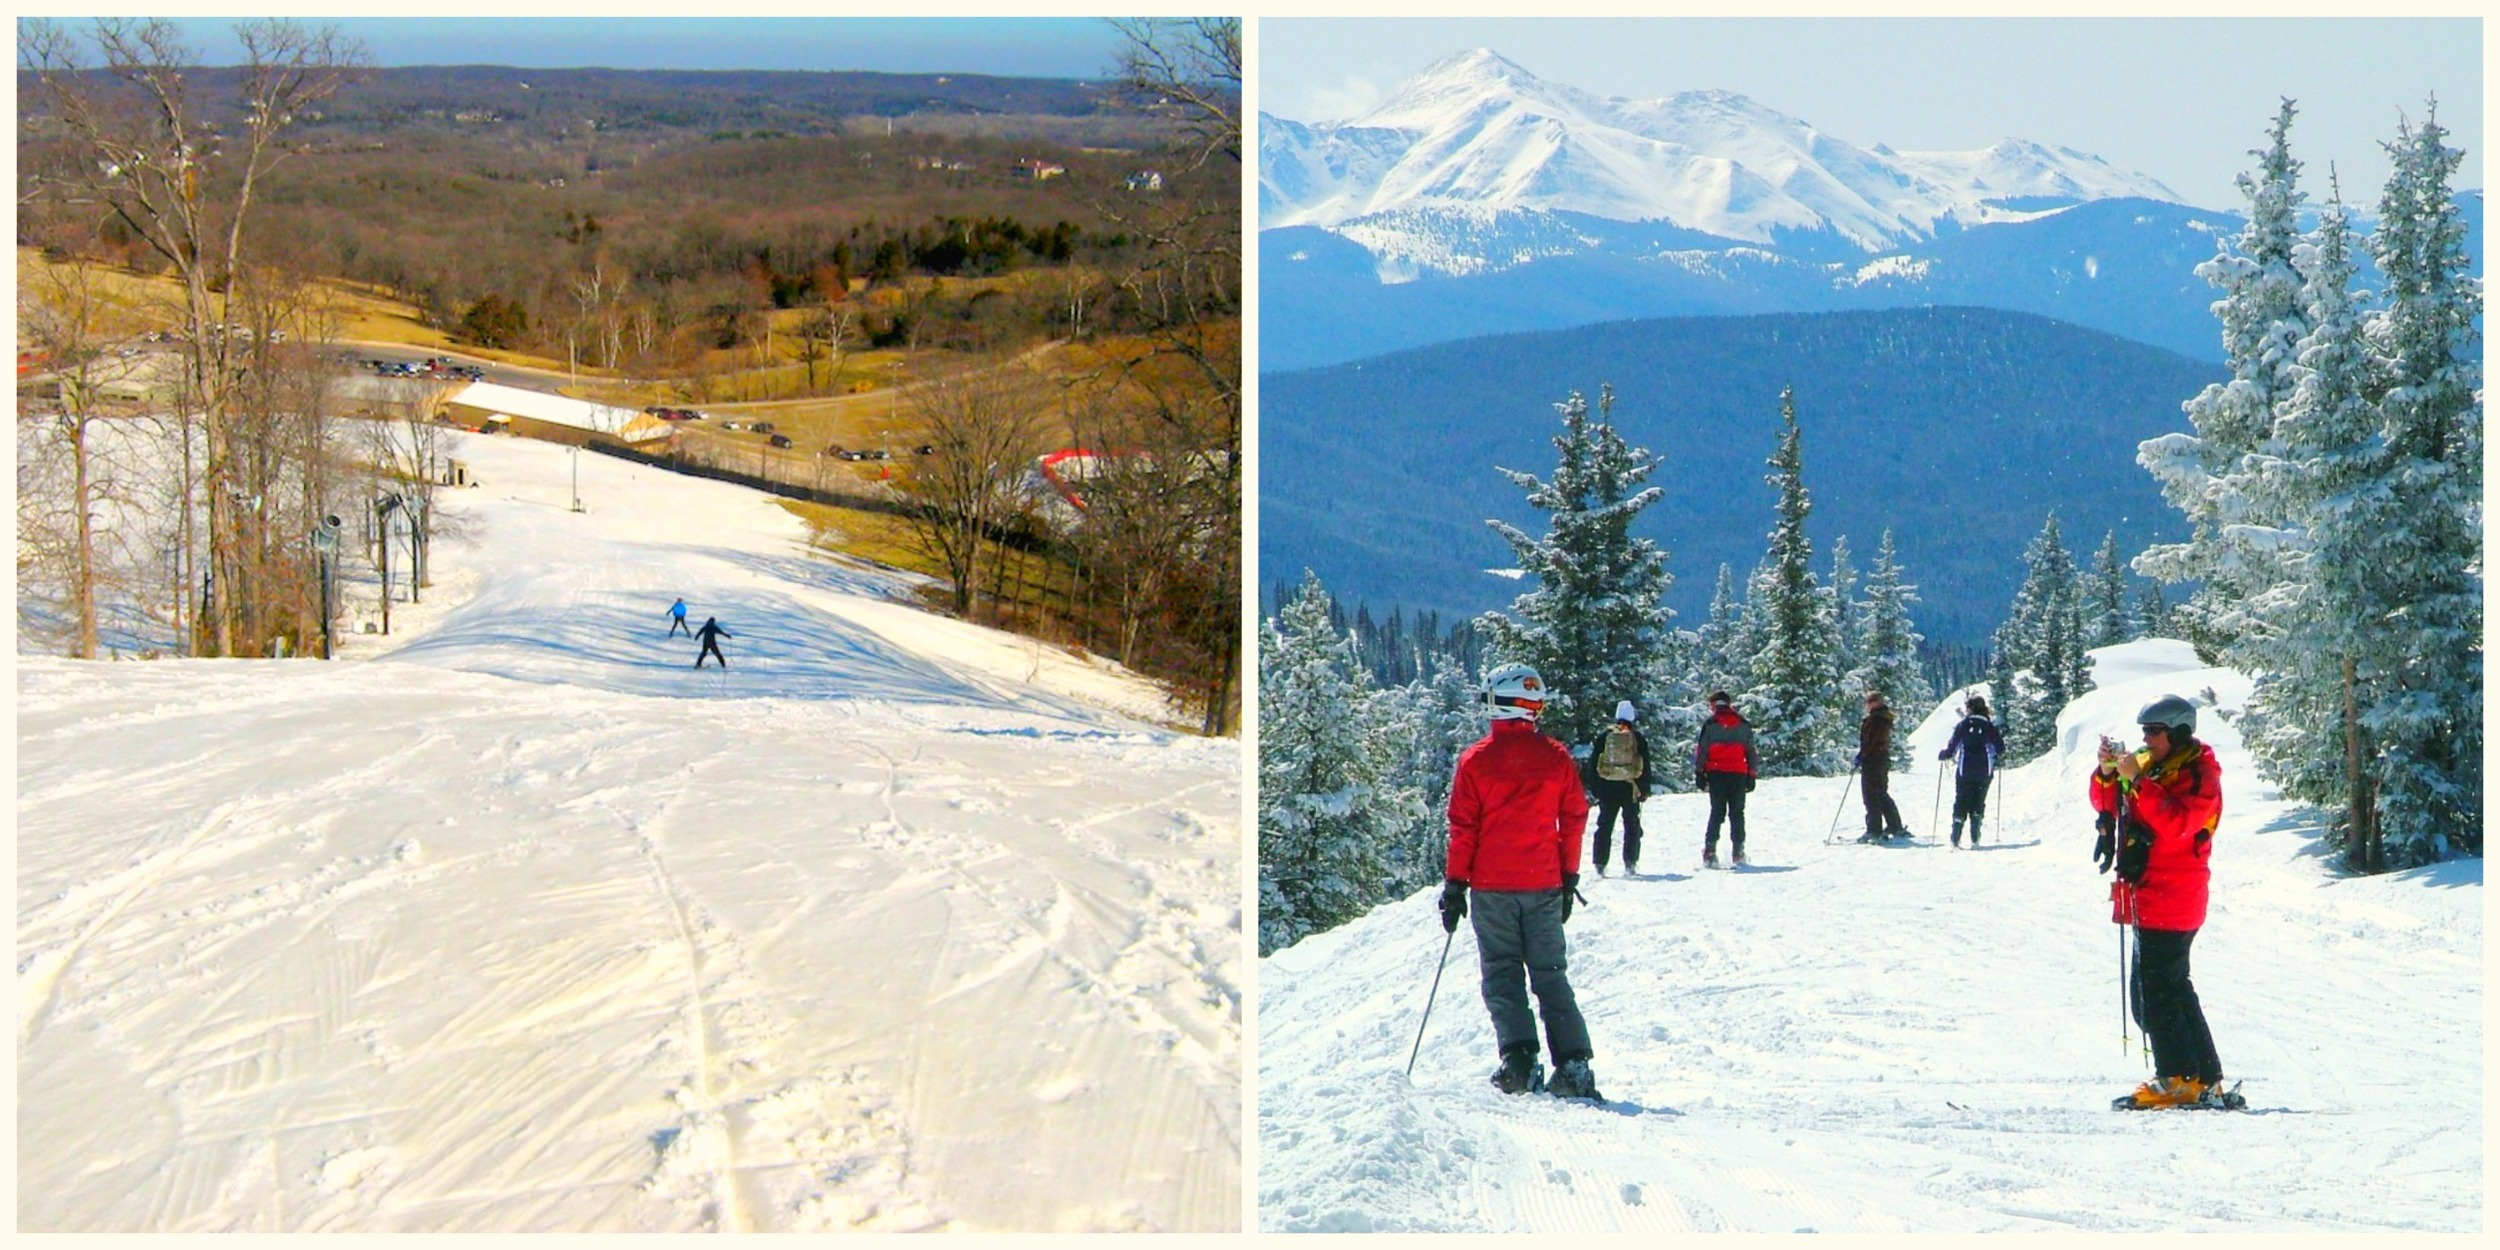 Although Sara and husband Ed are thrilled to be back in St. Louis (they met while completing their undergrad at Wash U) they will surely miss the sunny slopes of Colorado.Lucky for St. Louis, we have Hidden Valley...that's totally the same thing, right?  (Left)Hidden Valley Ski Resort, Missouri (Right)Pretty much every ski resort in Colorado